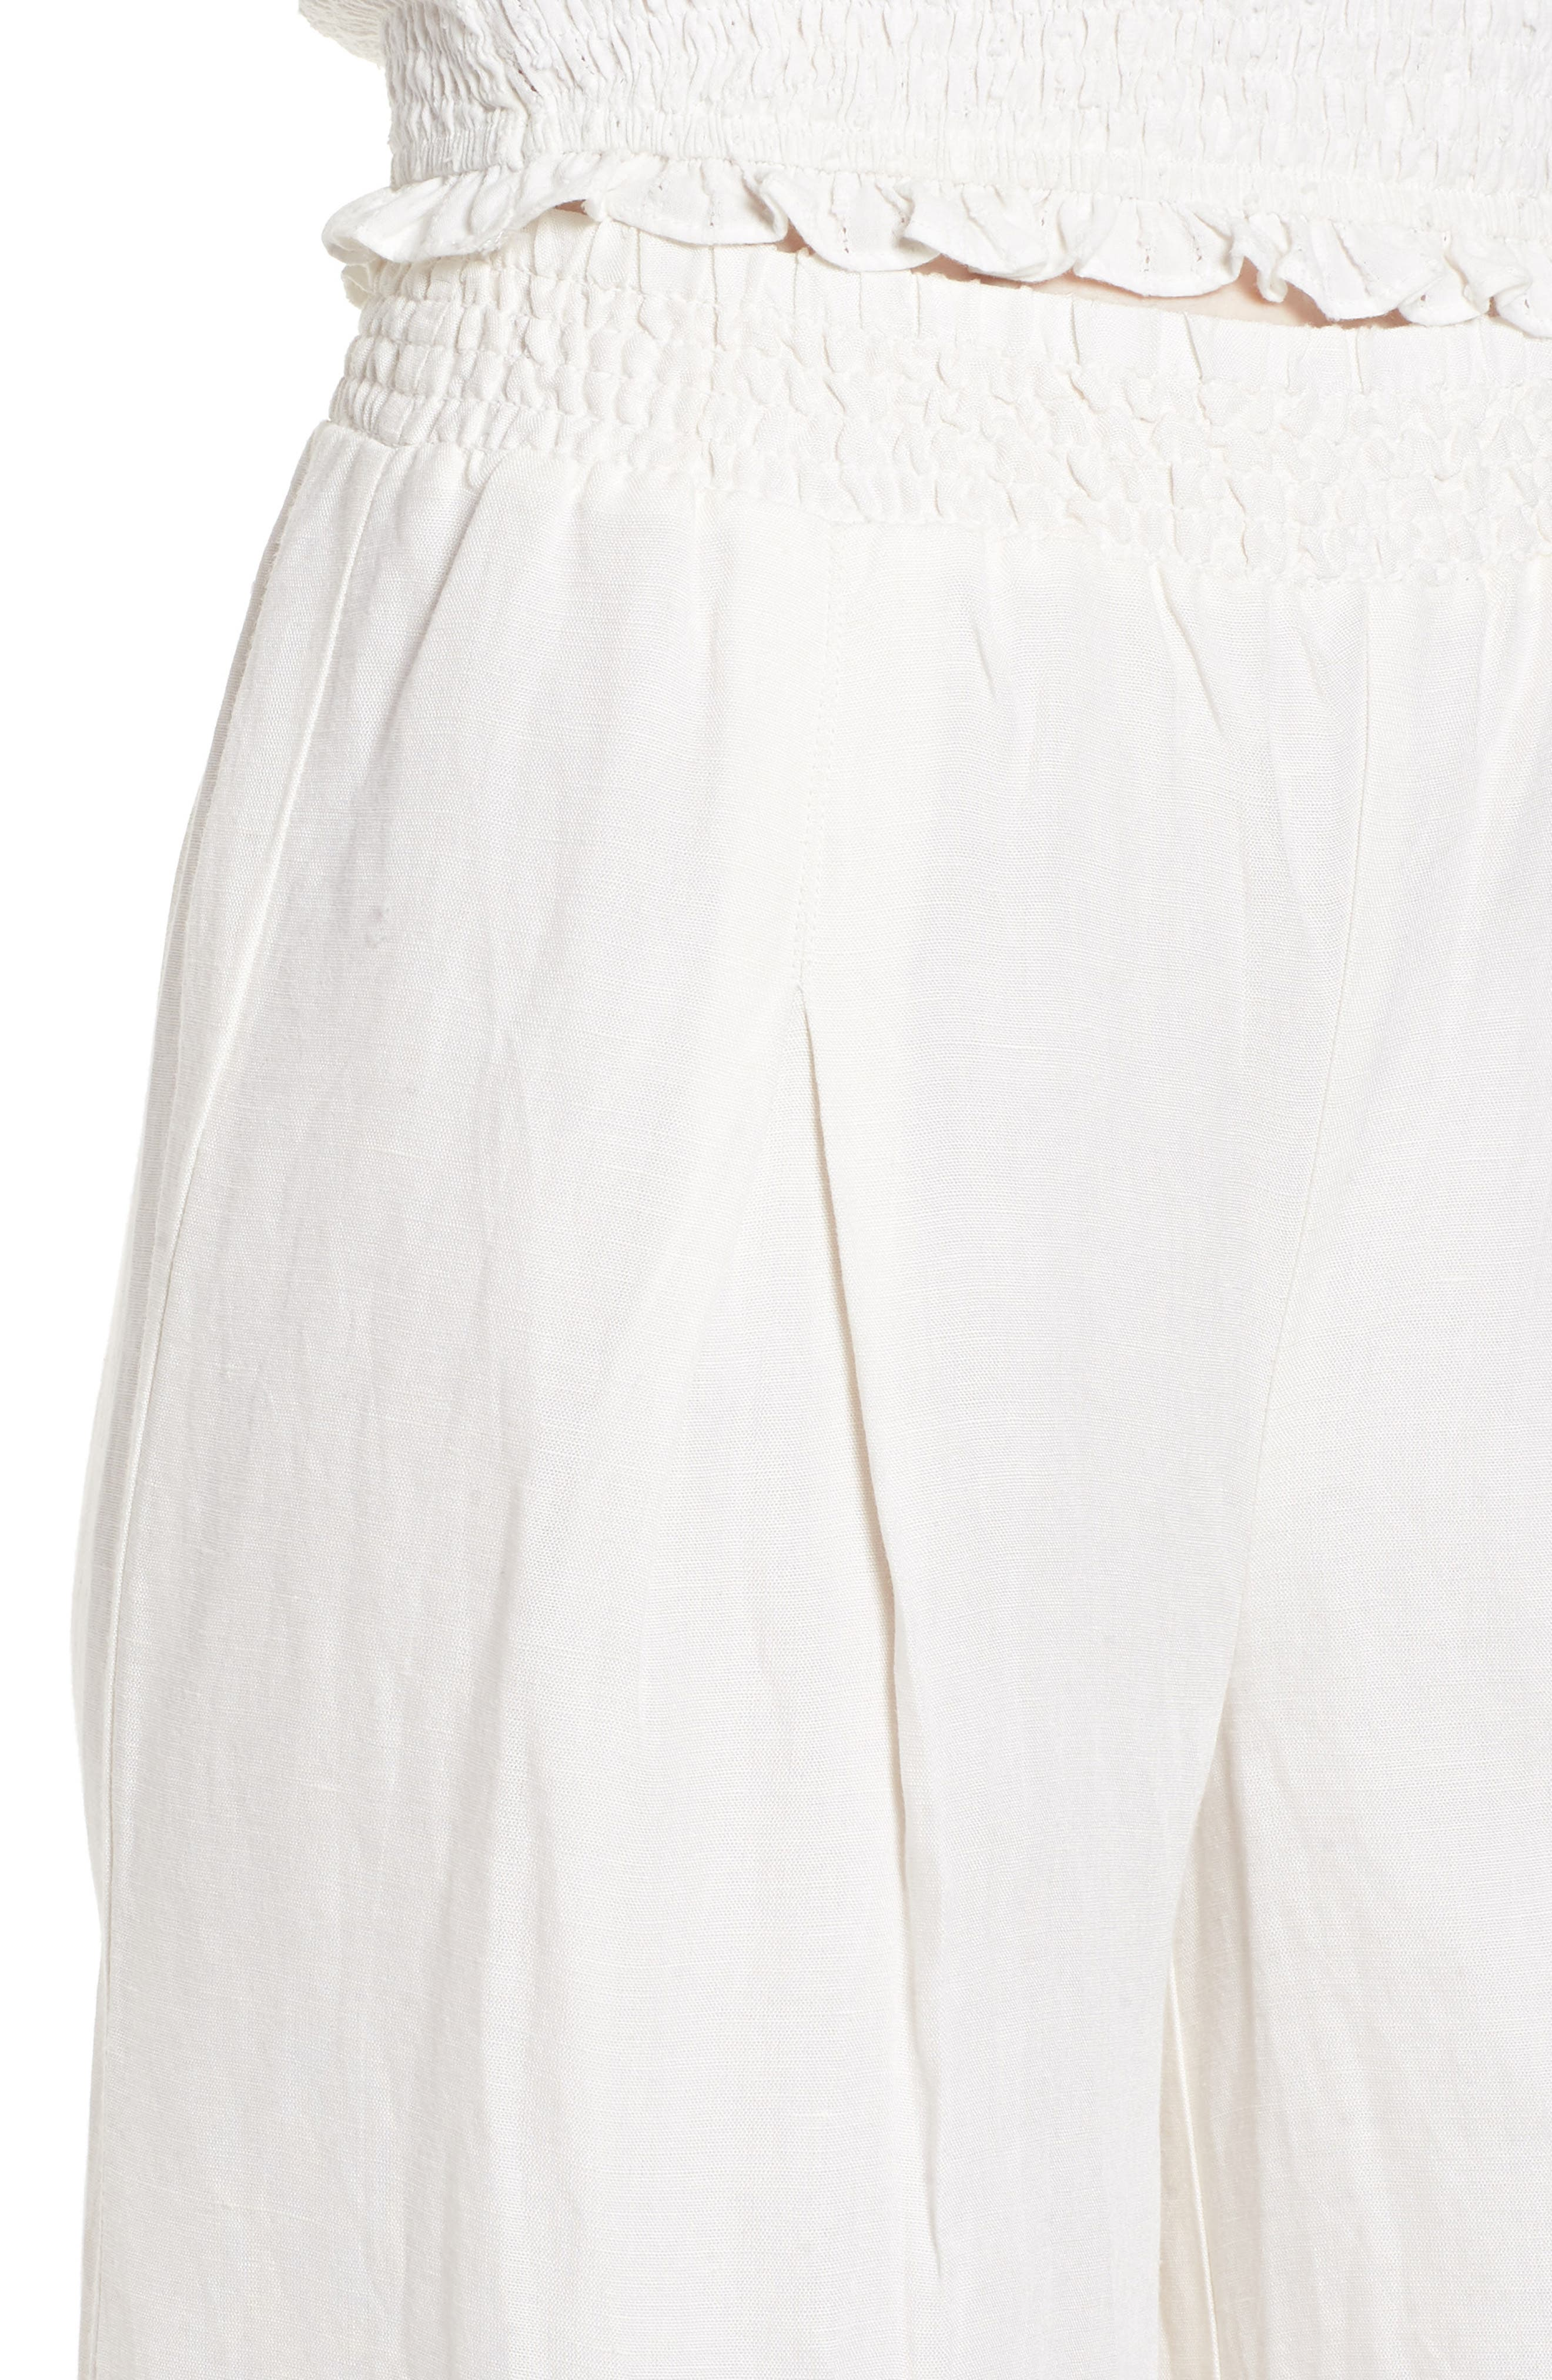 High Roads Smocked Wide Leg Pants,                             Alternate thumbnail 4, color,                             Cool Whip